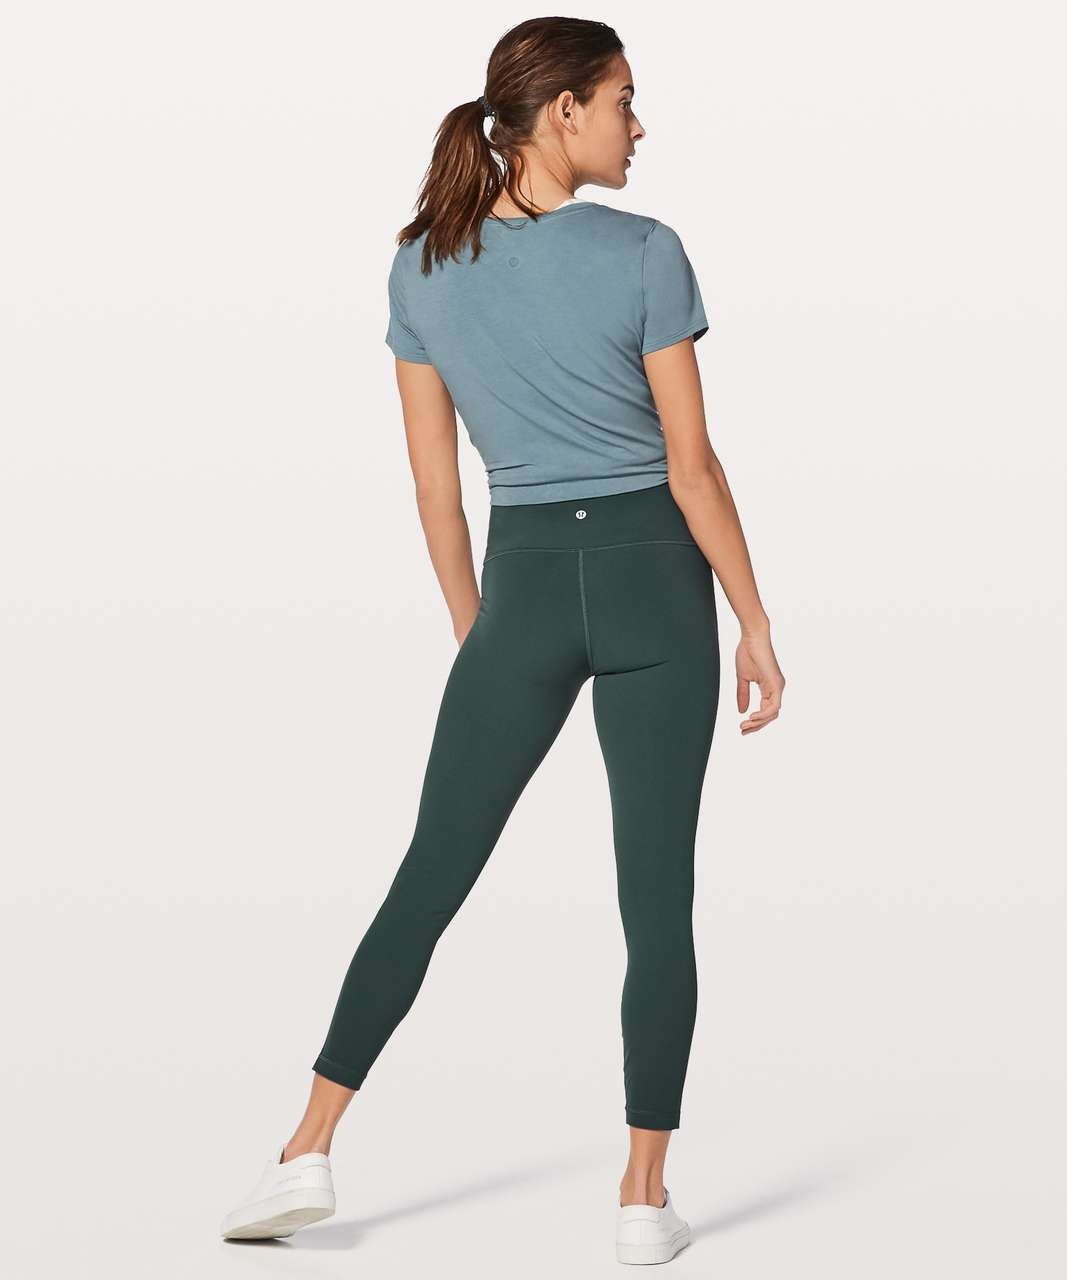 "Lululemon Wunder Under Hi-Rise 7/8 Tight *25"" - Teal Shadow"